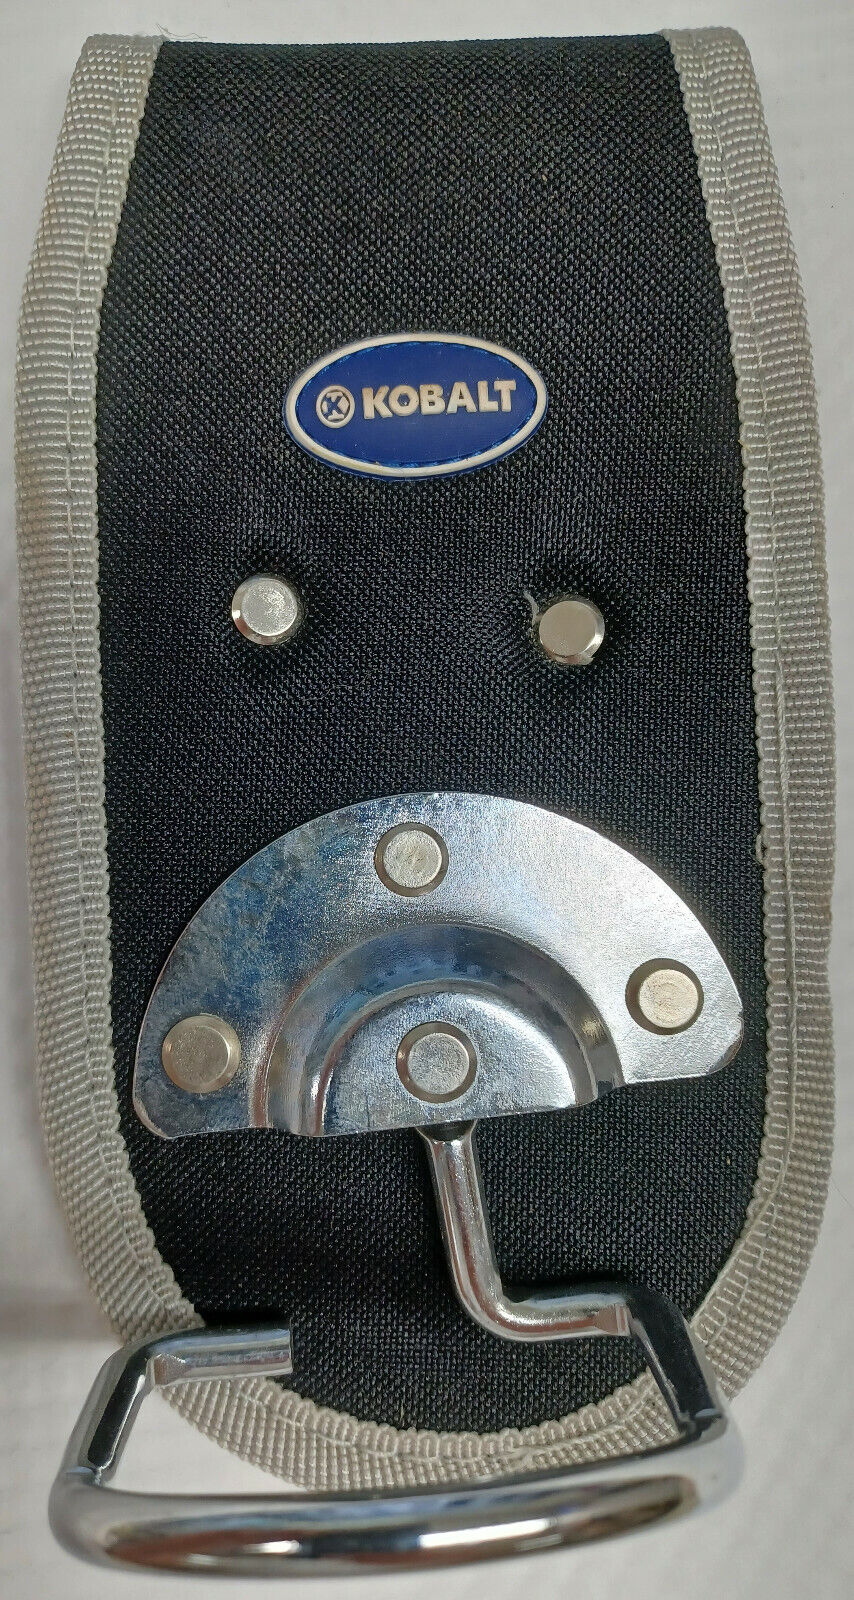 Kobalt Polyester Hammer Holder attach this to your tool belt or clip it on too!